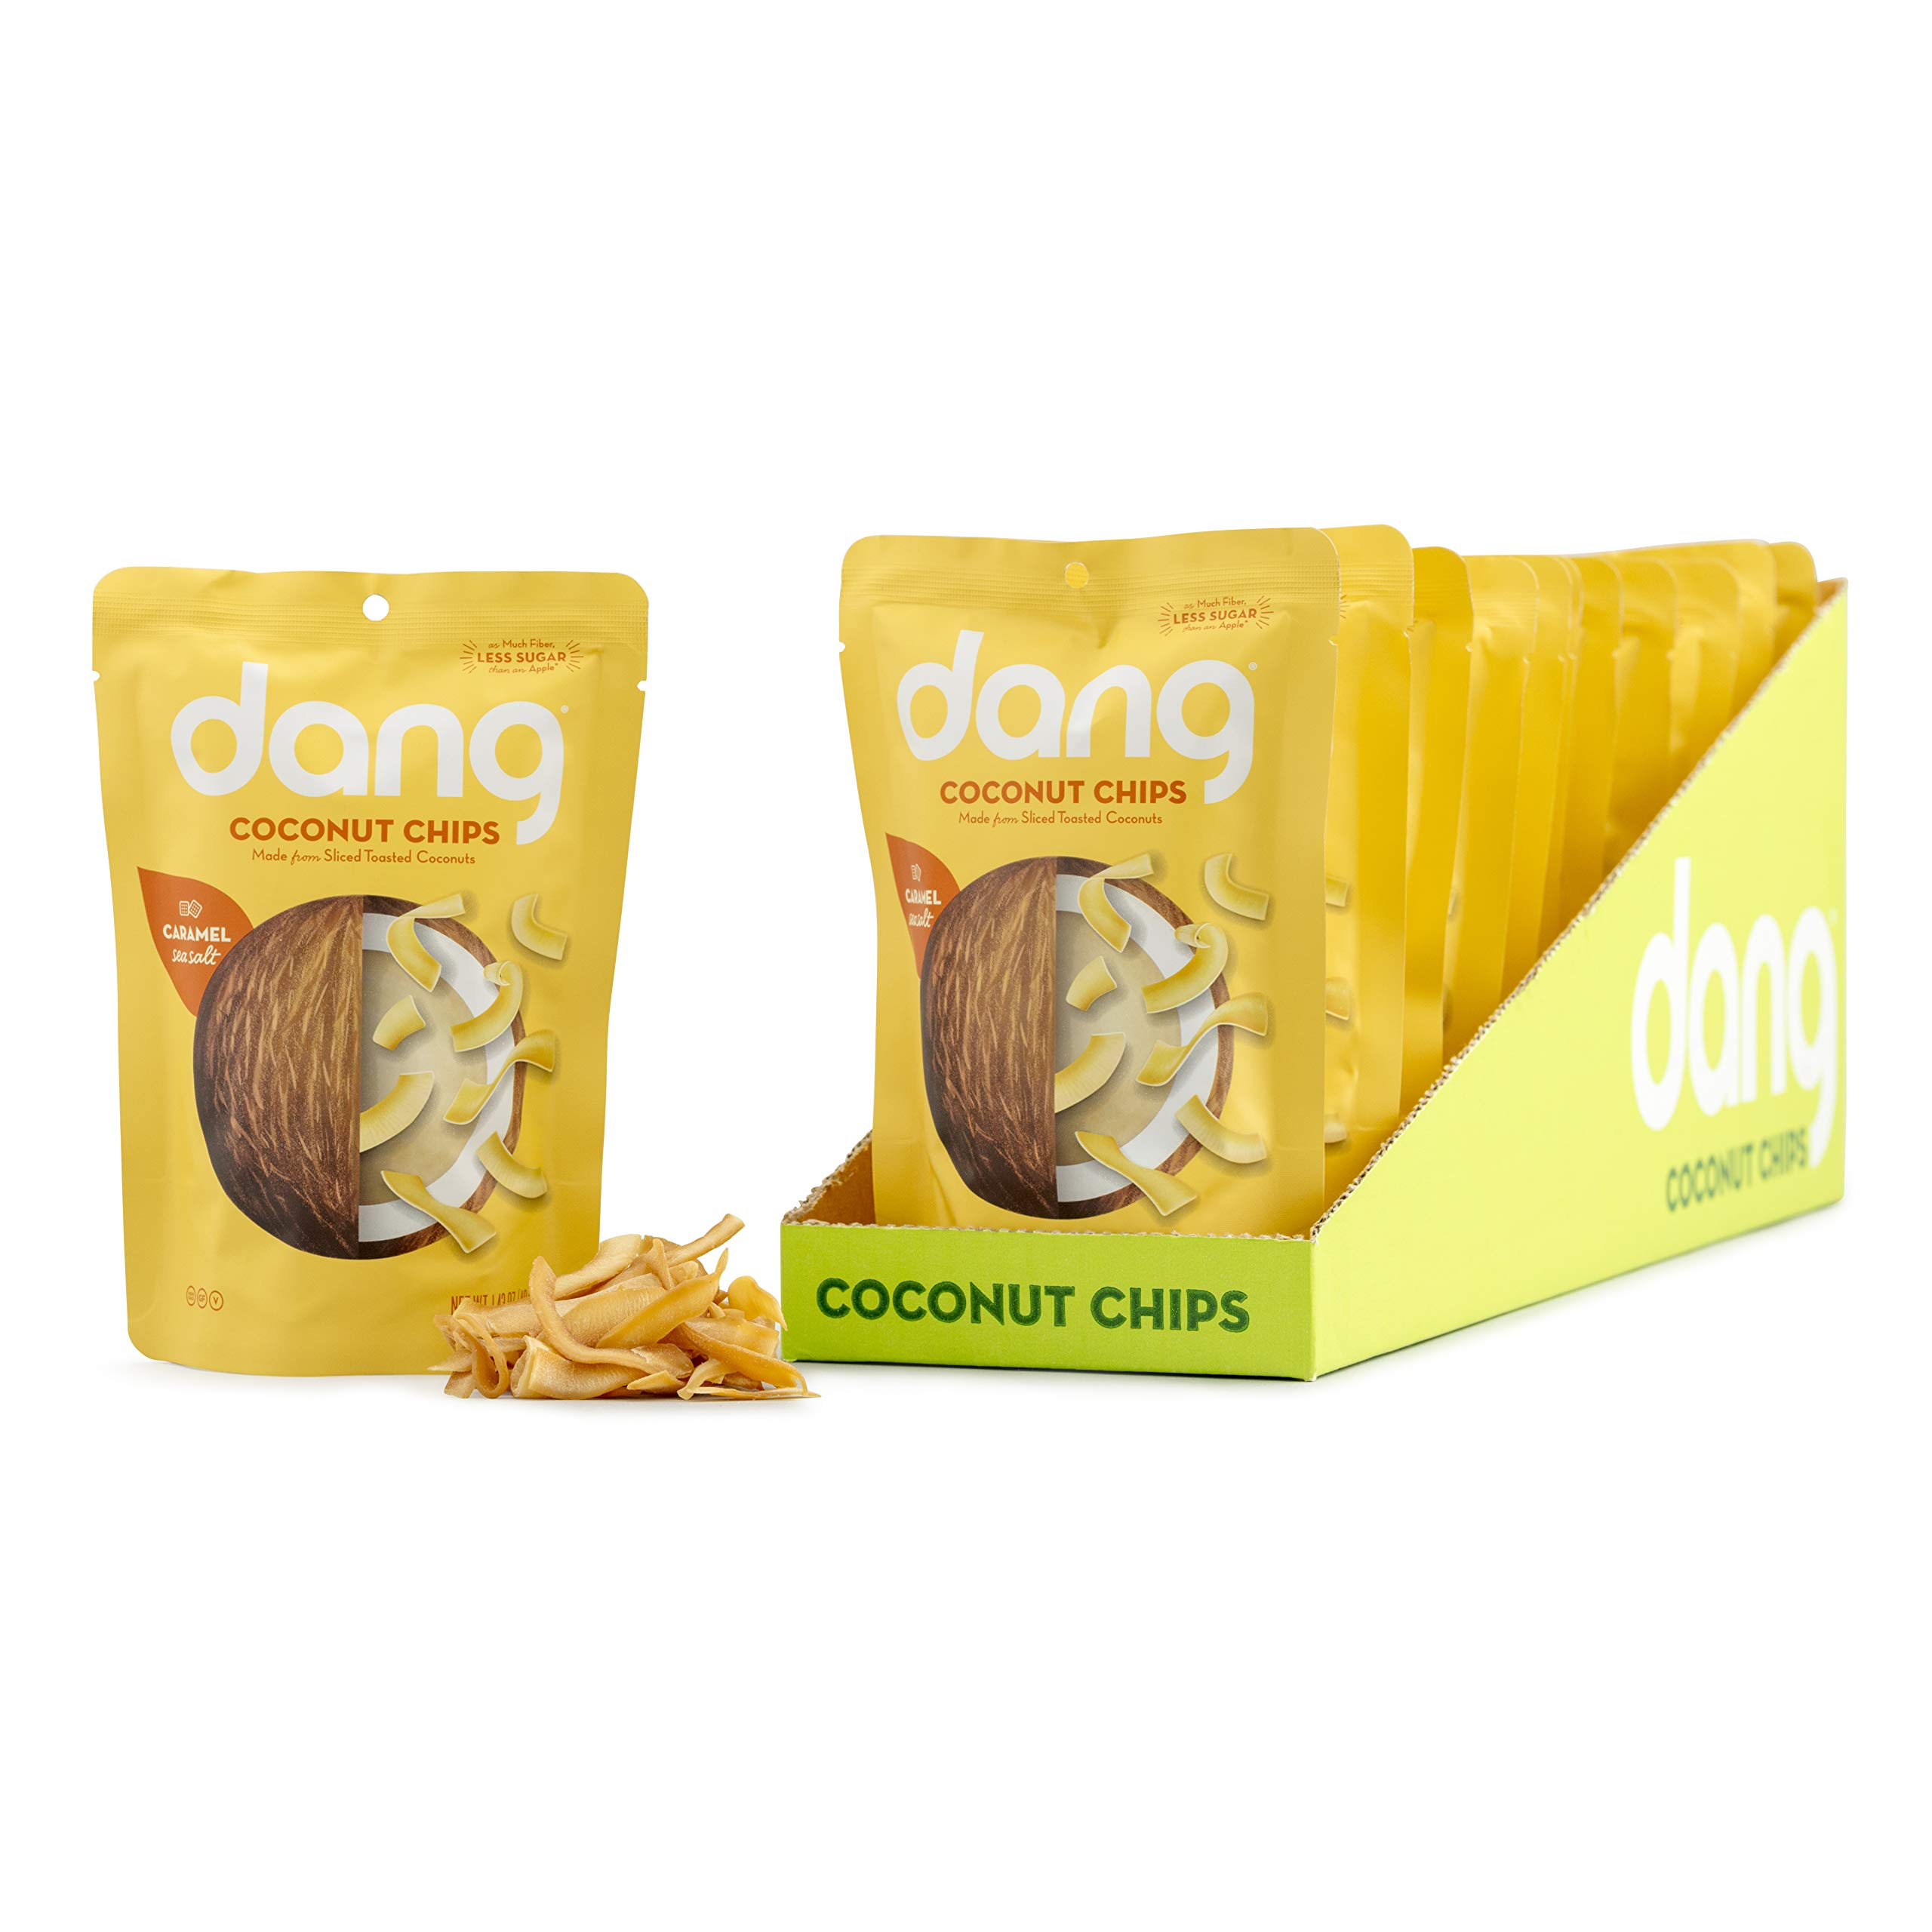 Dang Toasted Coconut Chips, Paleo, Gluten Free, Caramel Sea Salt, 1.43 Ounce (12 Count)